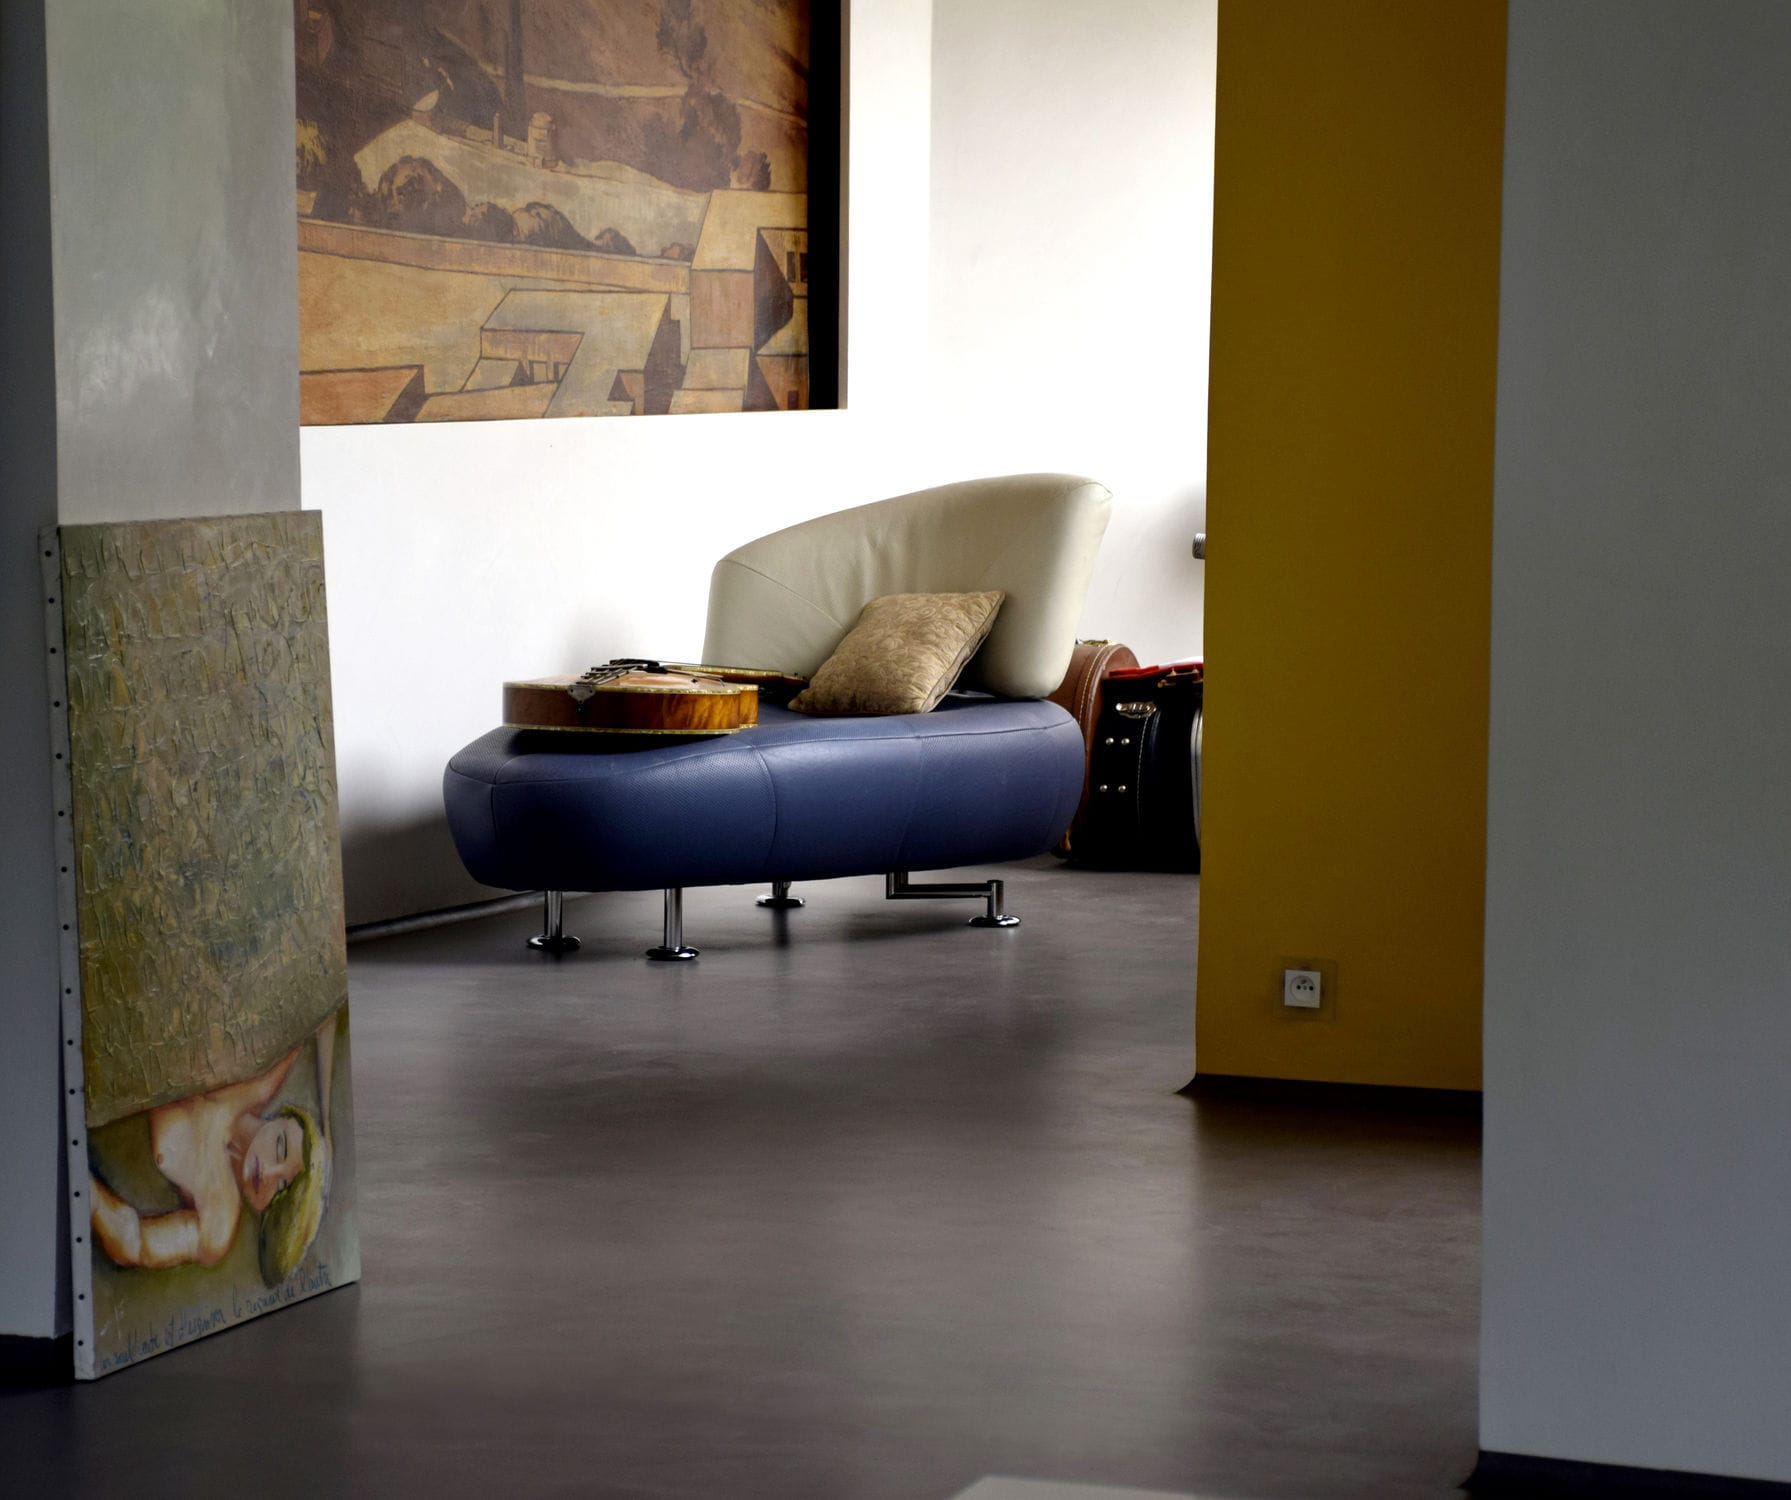 residential concrete floors. Concrete Flooring / Residential Waxed - MICROCEMENT Floors